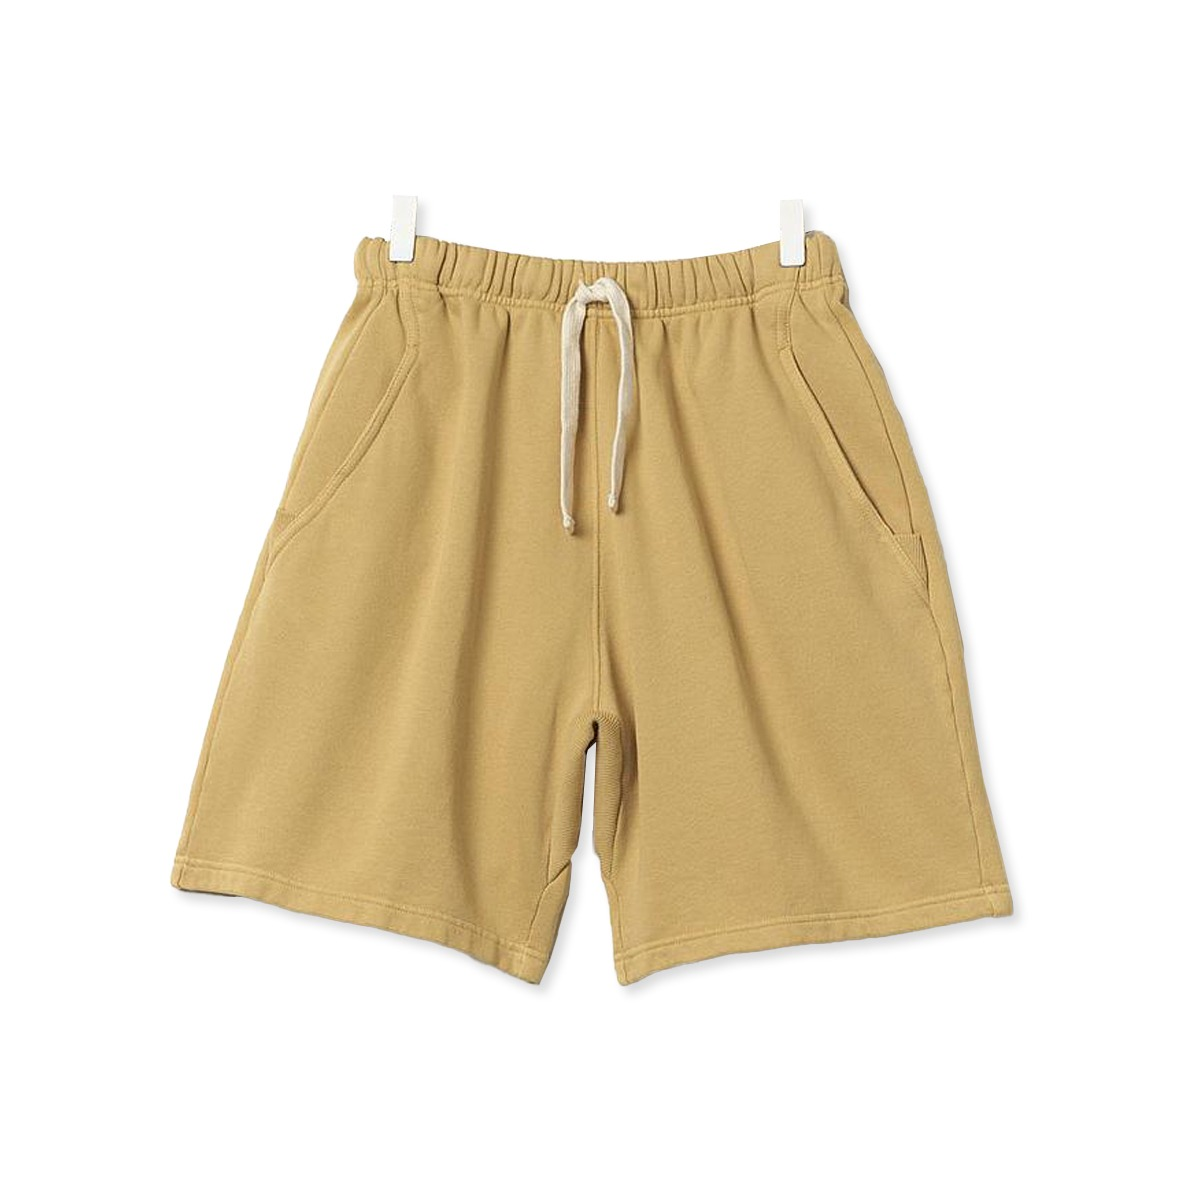 [Merz B. Schwanen] GOOD BASICS MEN'S SWEAT SHORTS 'CORN'